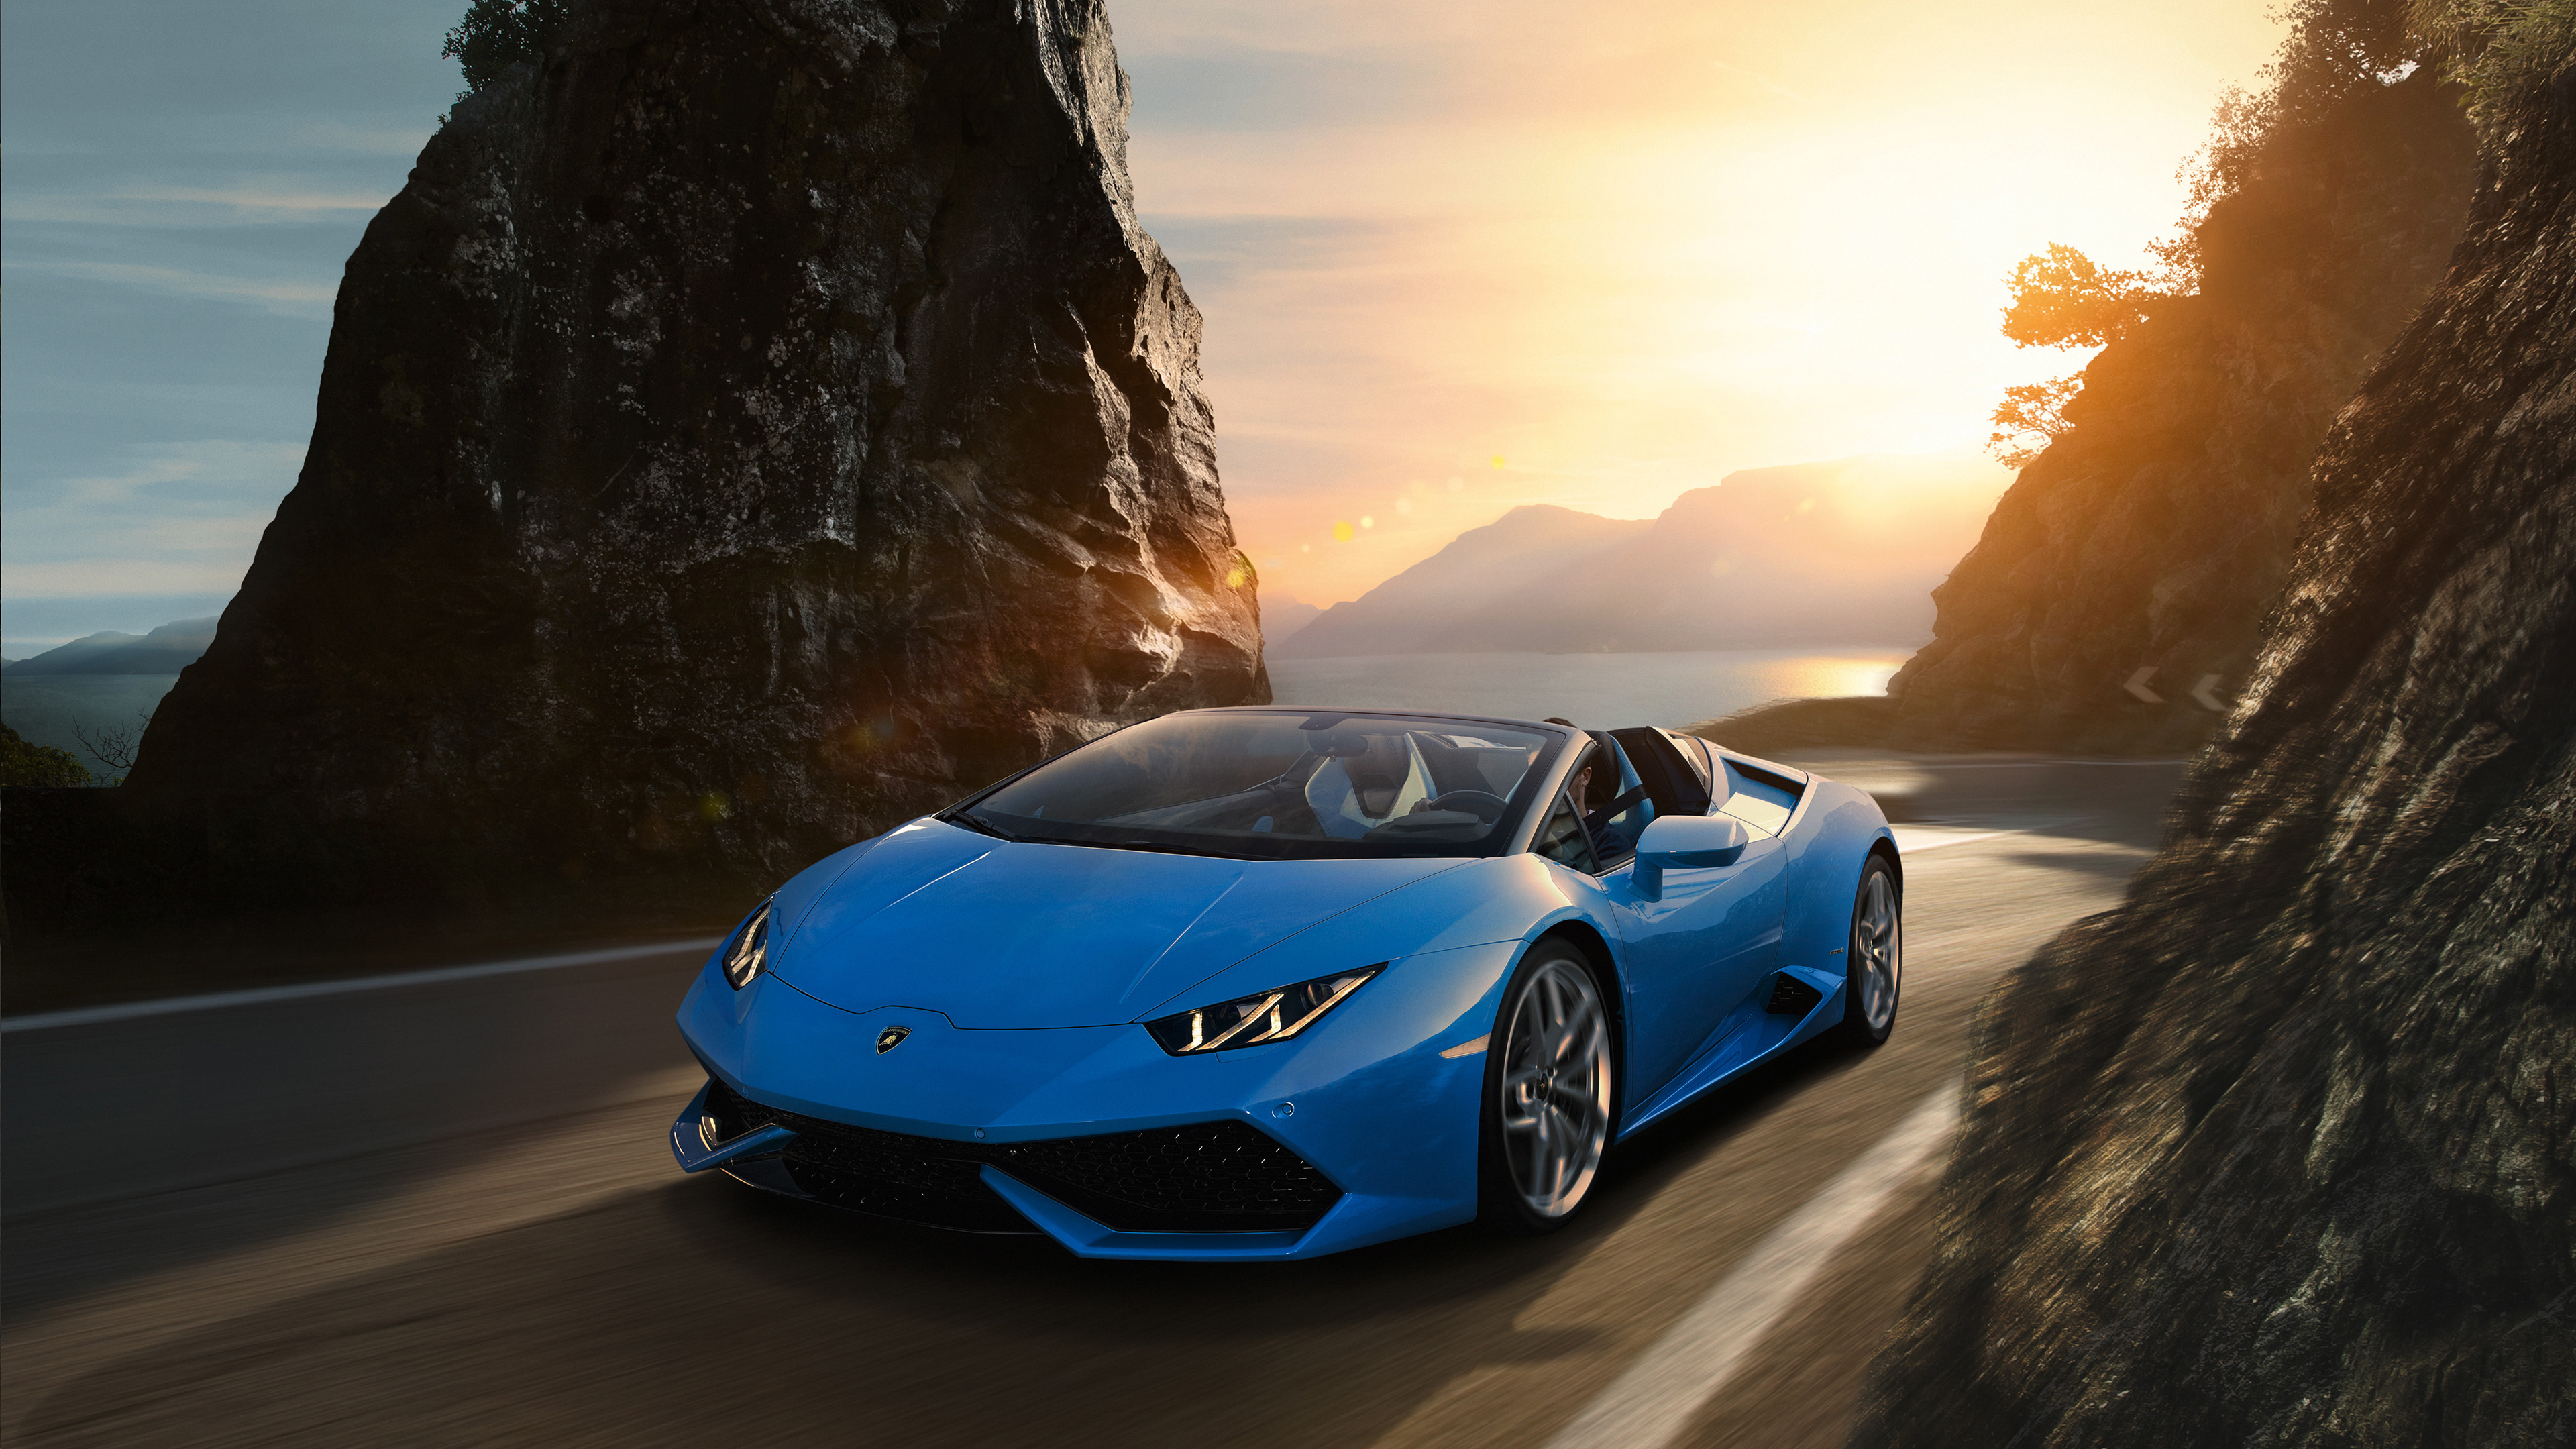 Sky Blue Lamborghini Huracan 4k, HD Cars, 4k Wallpapers